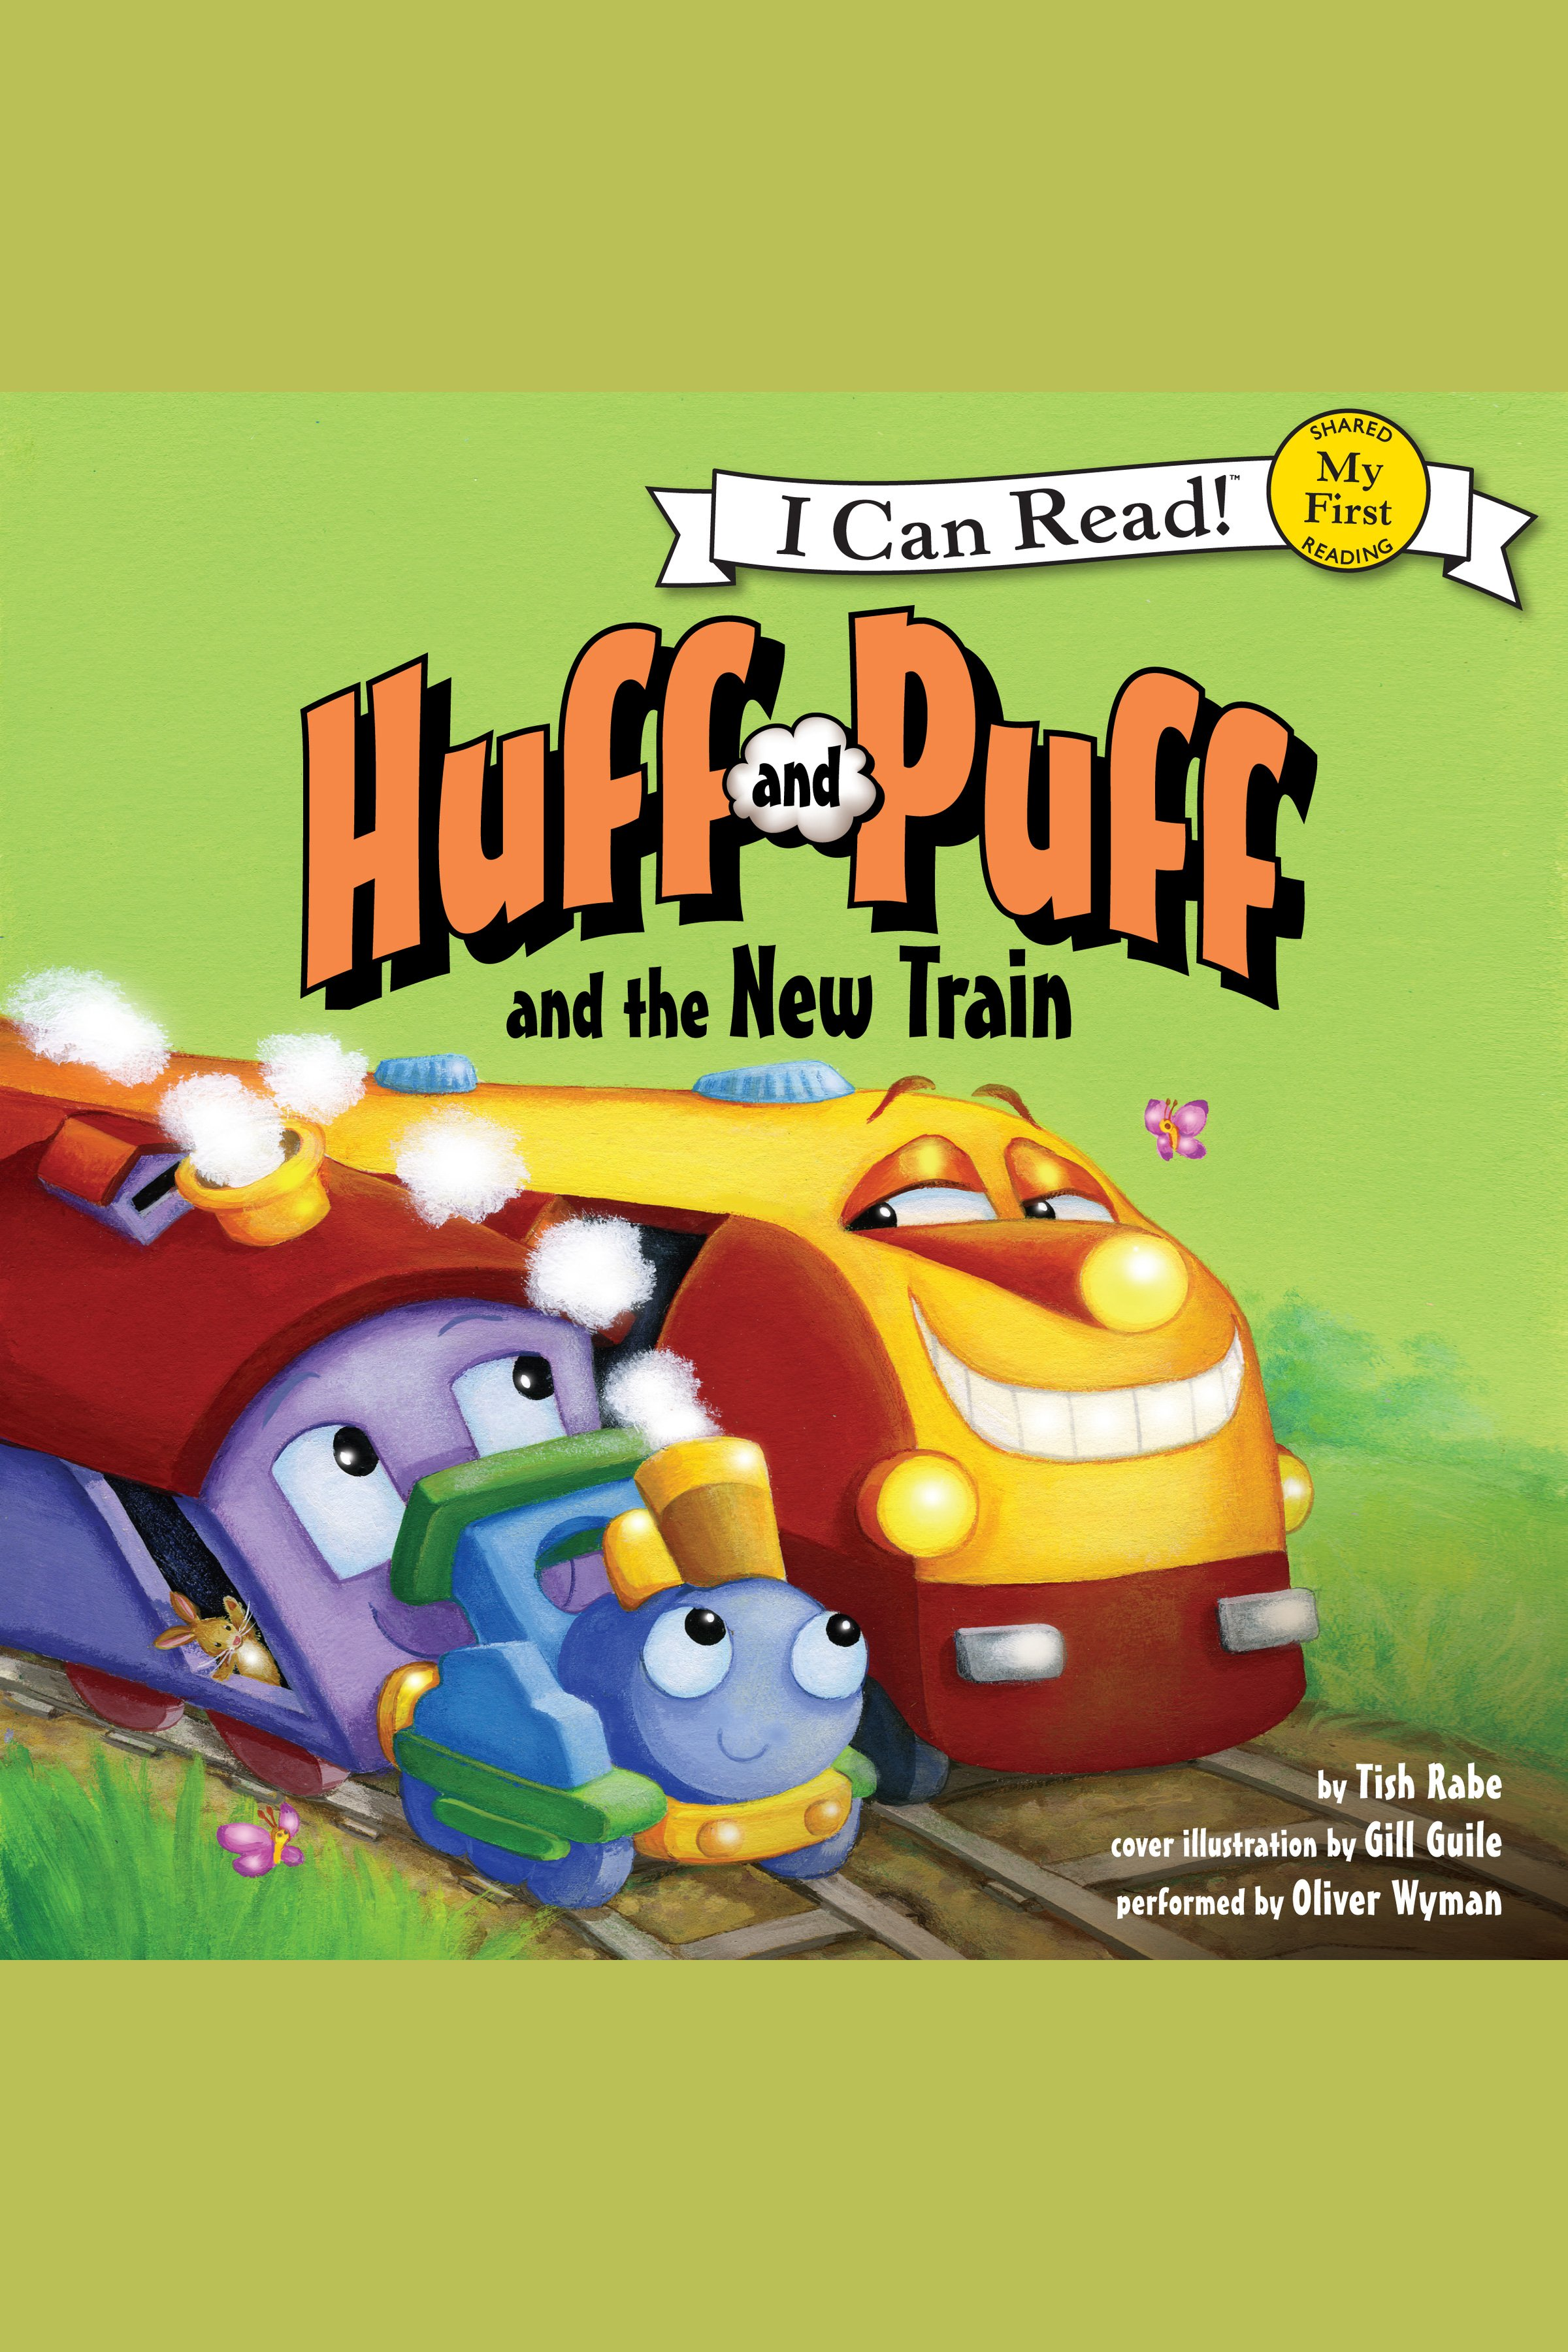 Huff and Puff and the new train cover image